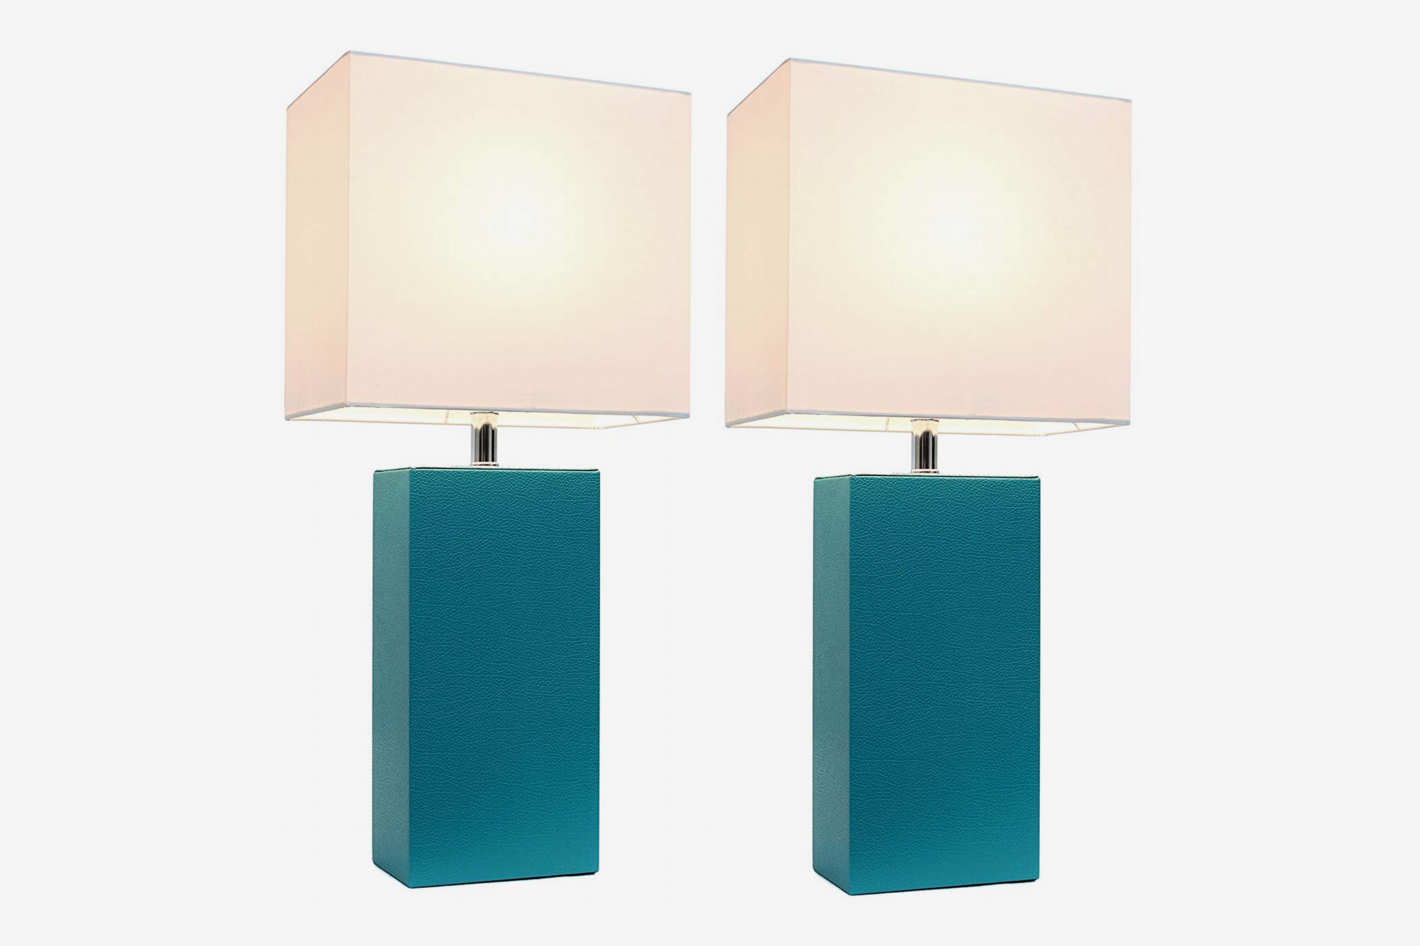 Cool Bedside Lamps Elegant Designs 2 Pack Leather Lamps